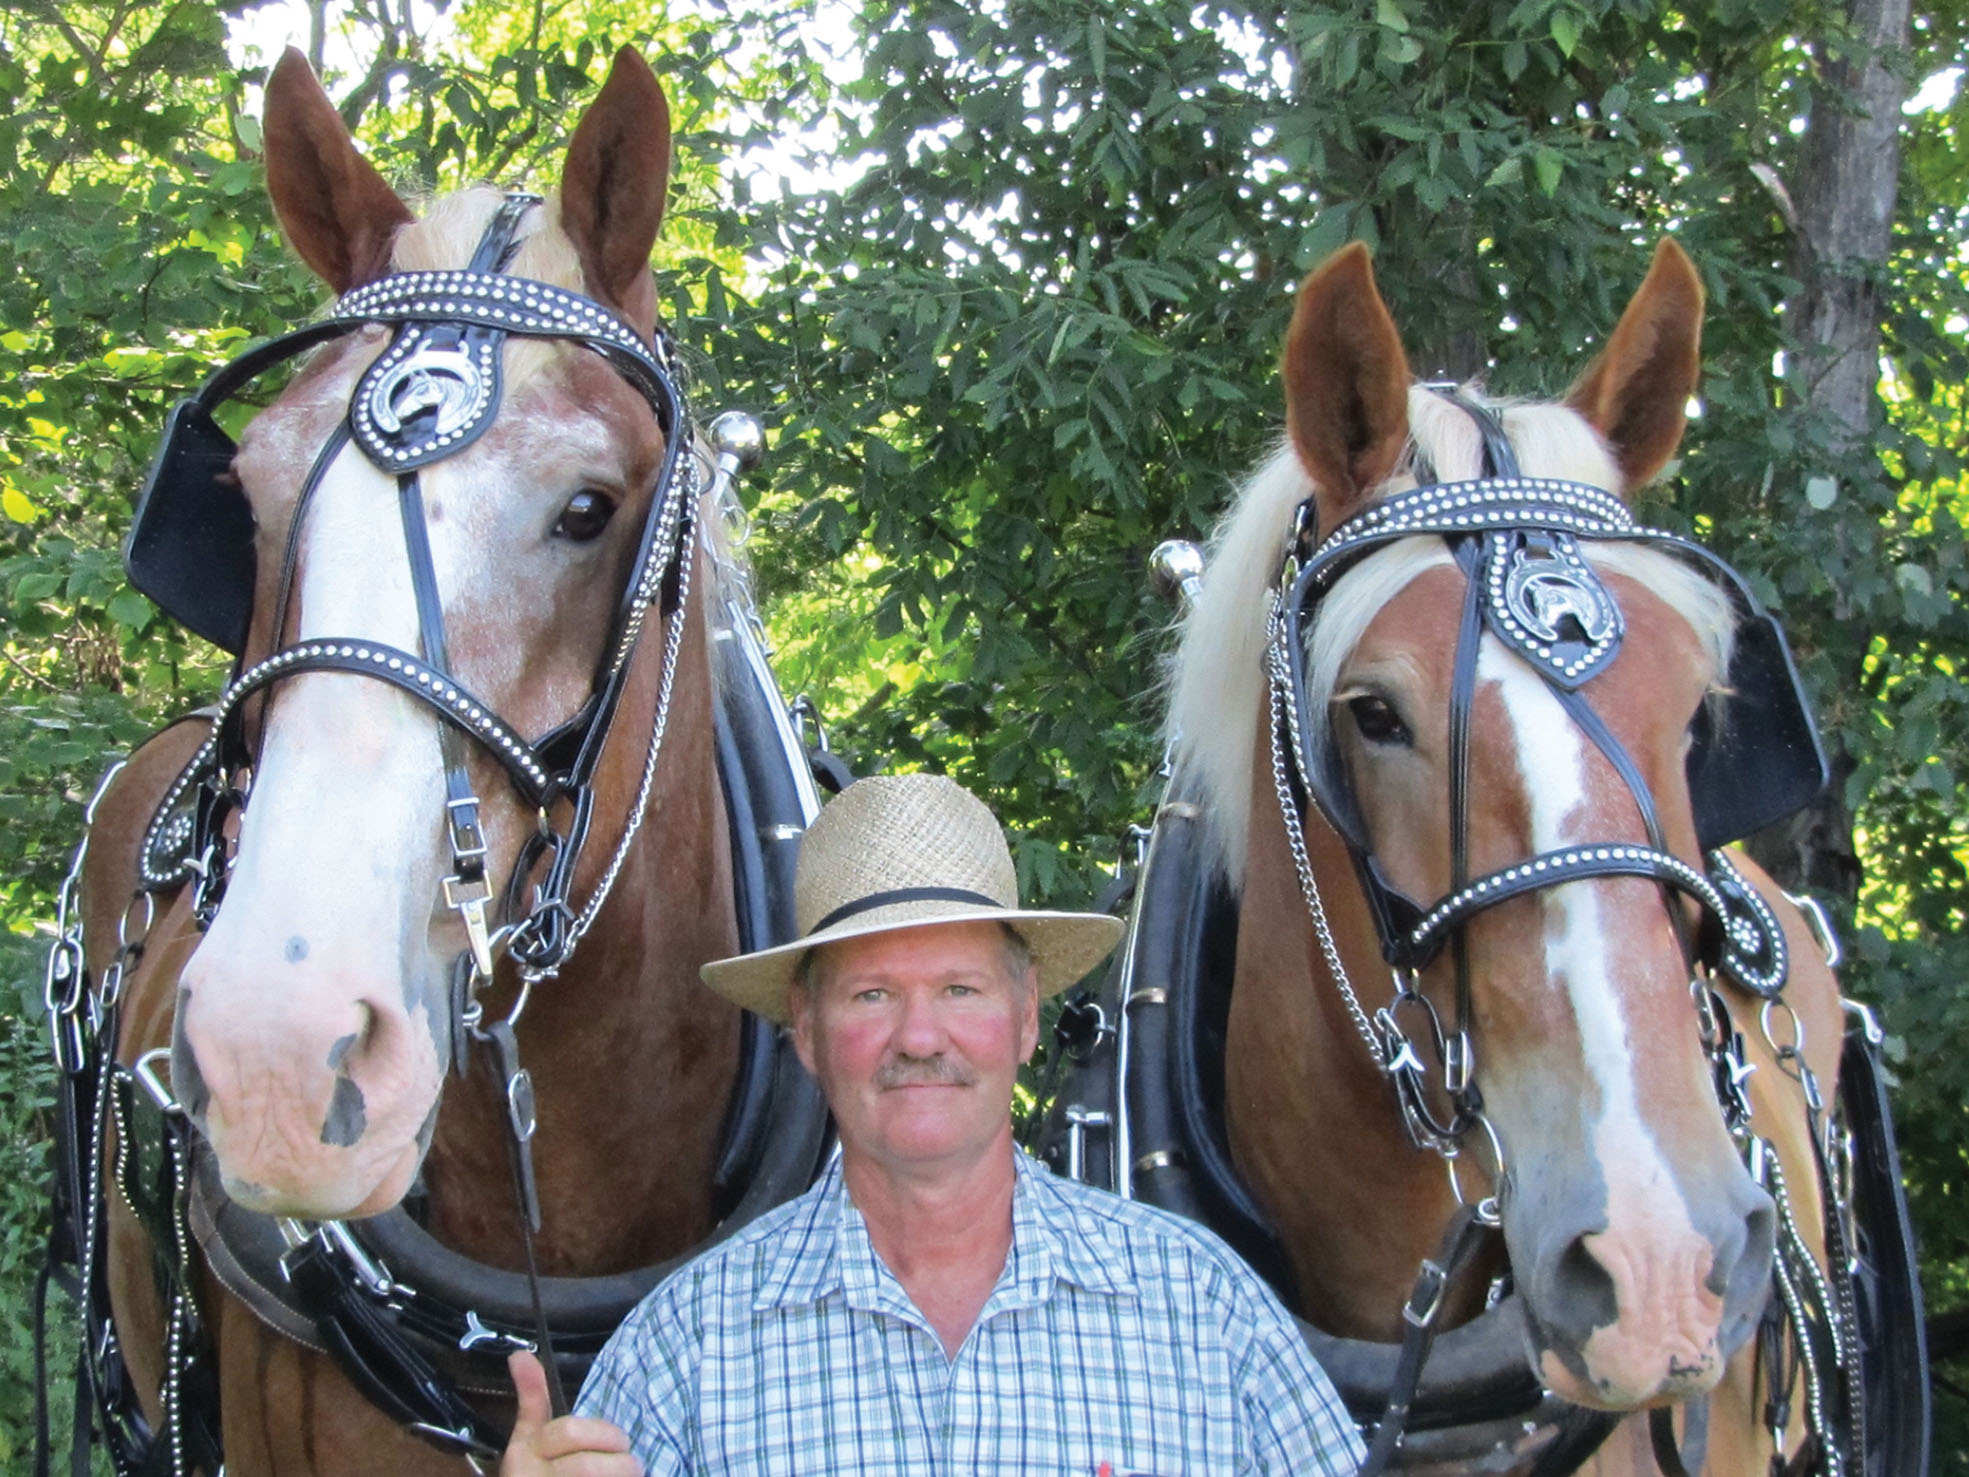 When not assisting his real estate clients, Kim Hadwen can be found caring for horses on his farm he shares with his wife, Jeanne. Photo courtesy Kim Hadwen